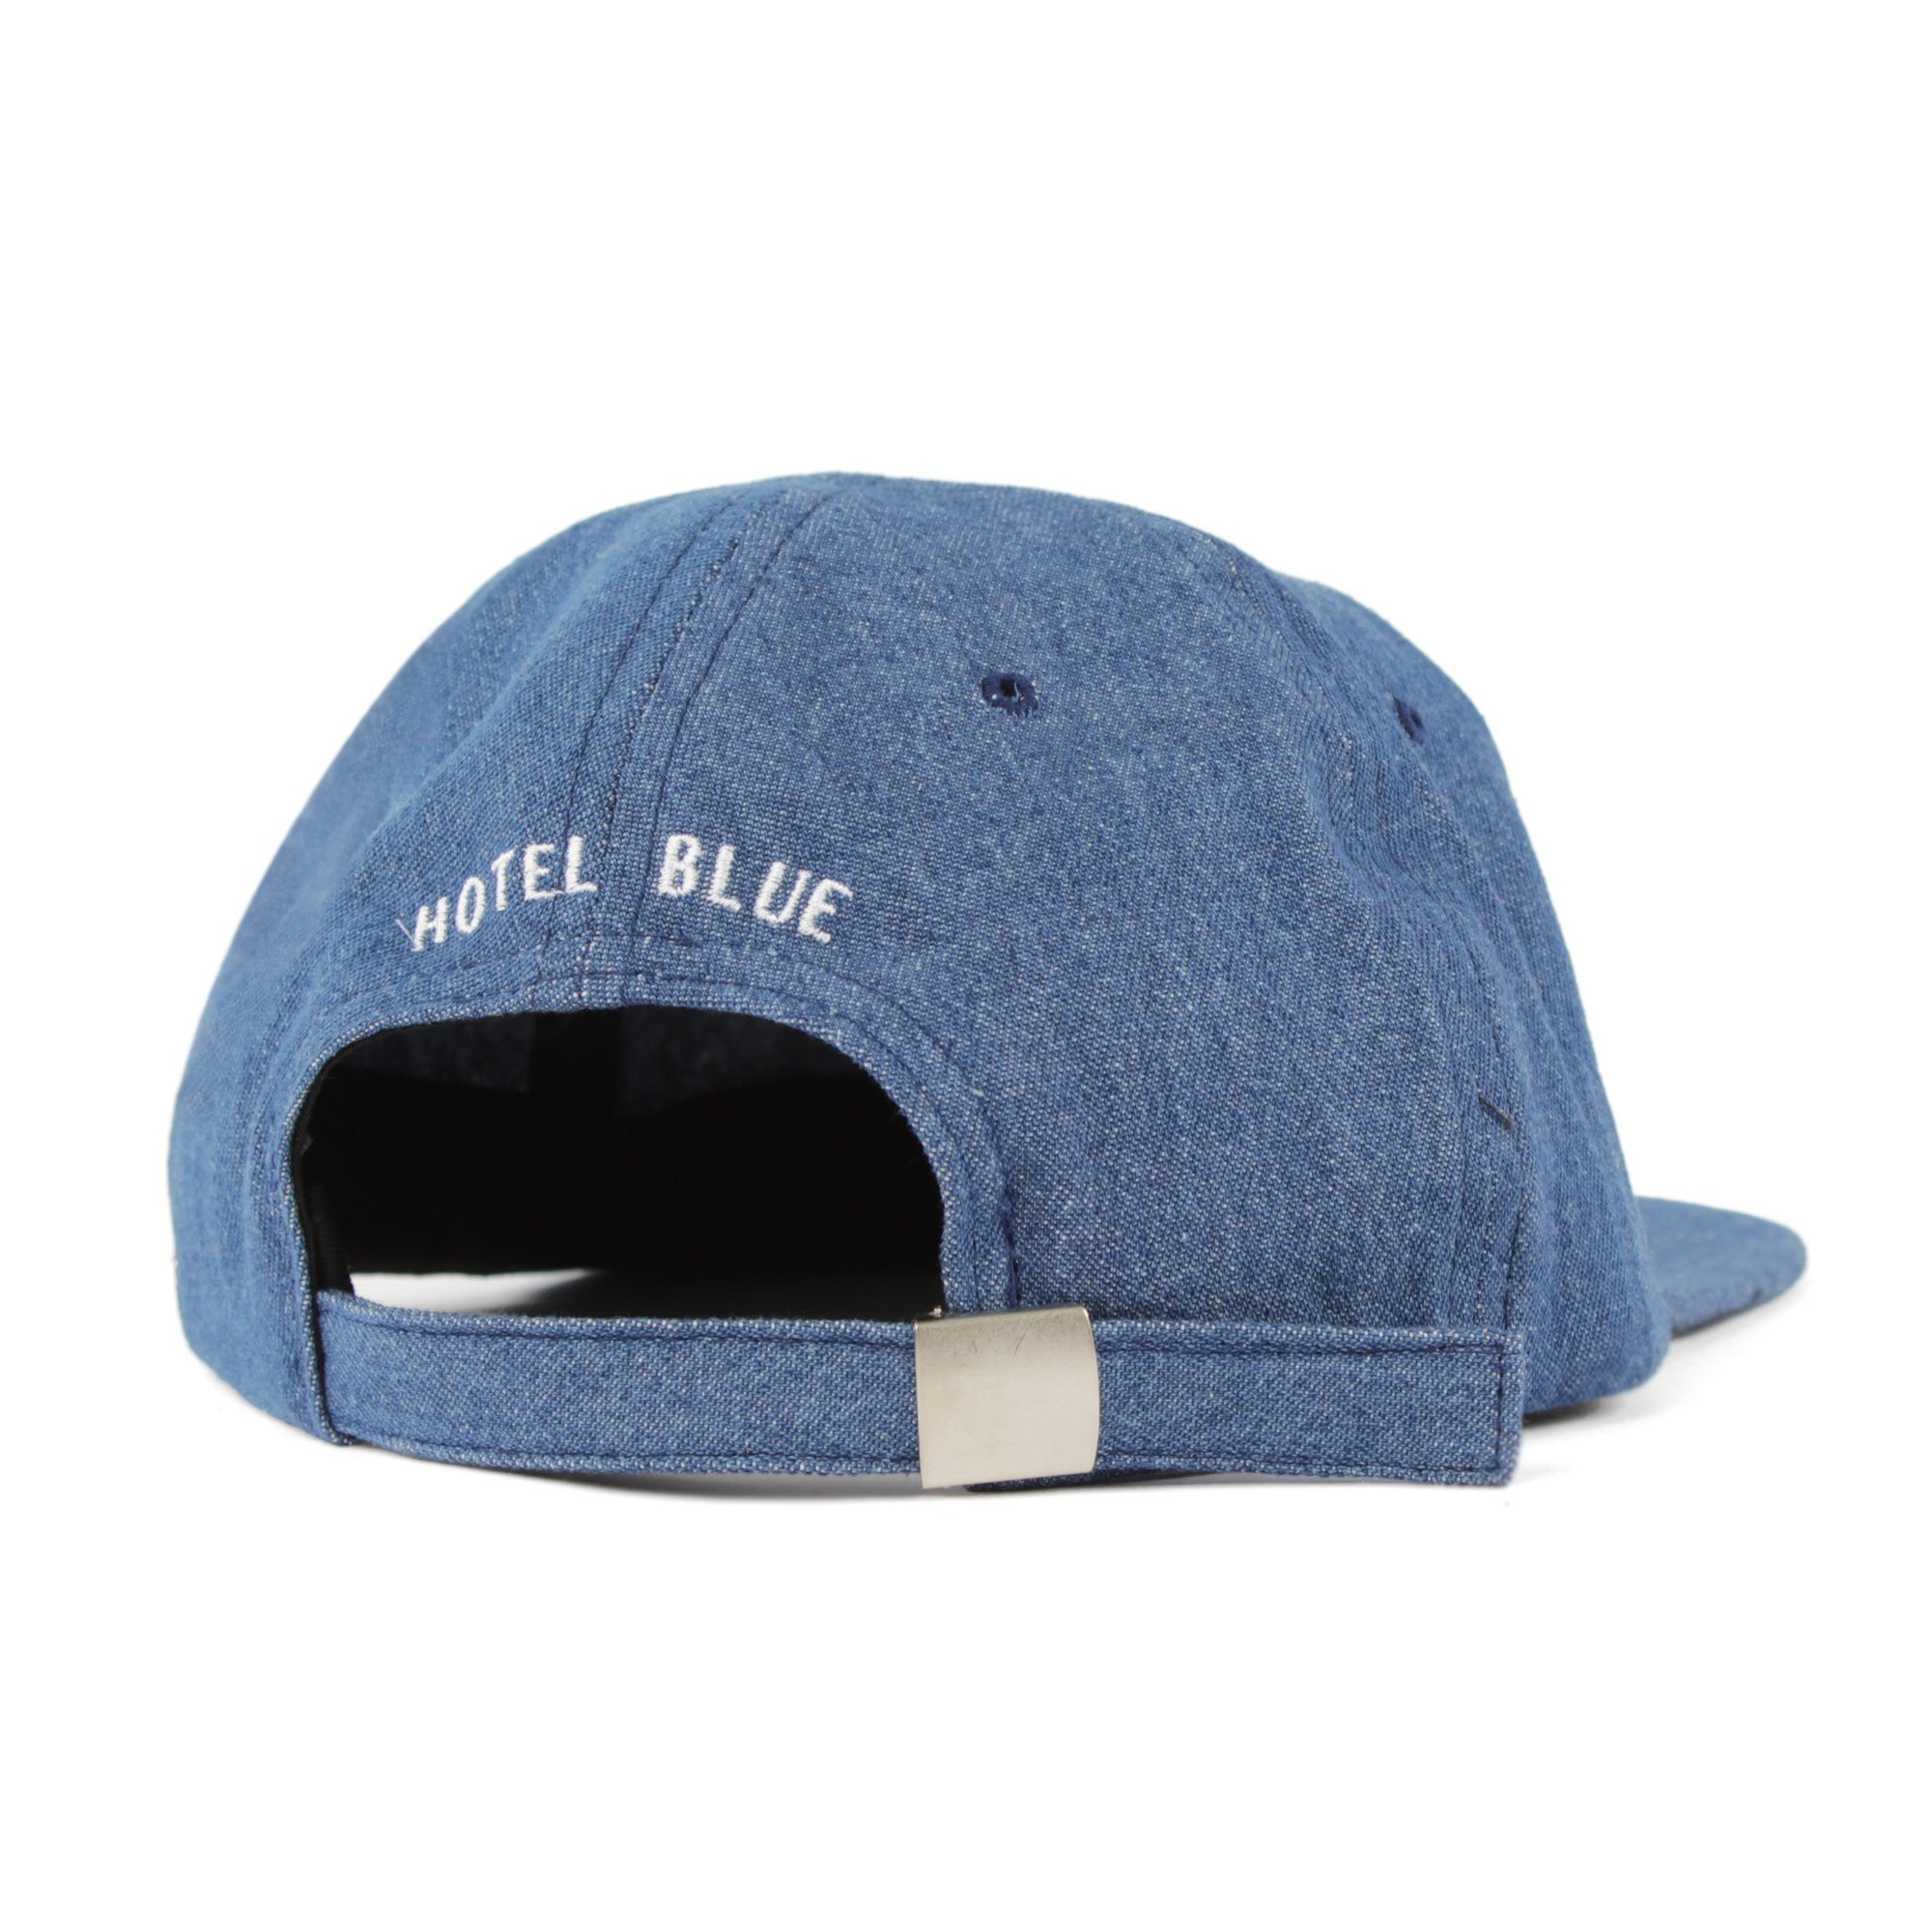 Hotel Blue Arch Cap Product Photo #2